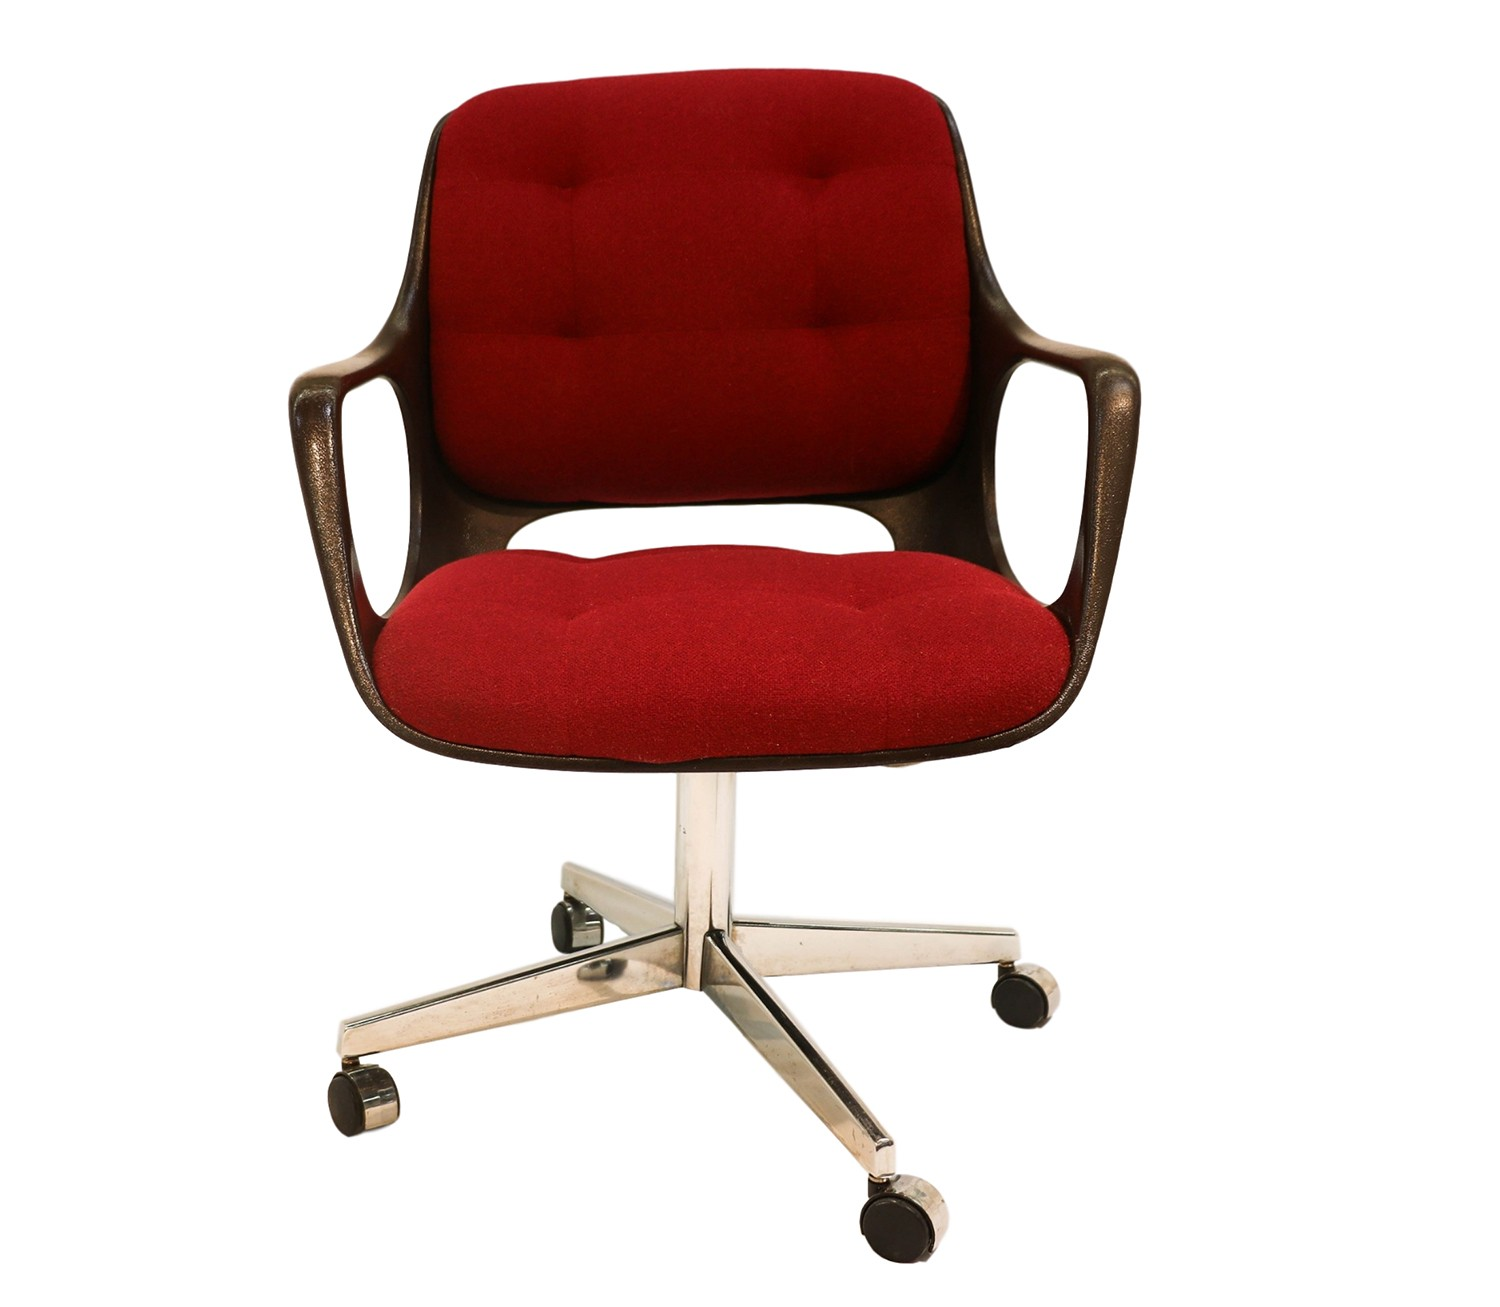 Mid century modern office chair hermann miller style for Contemporary office chairs modern